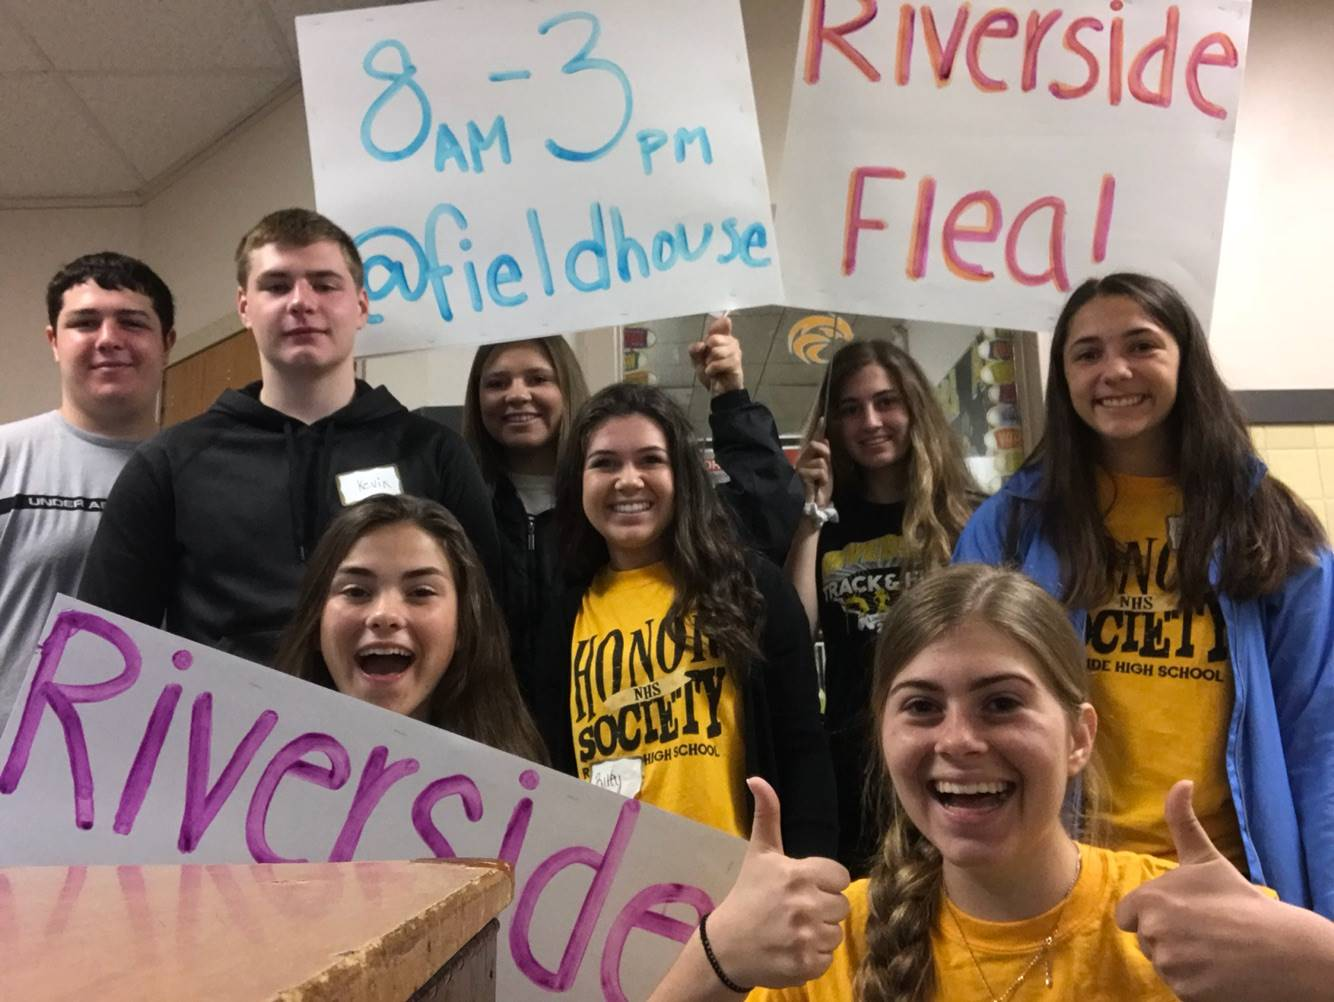 Riverside Flea Volunteers